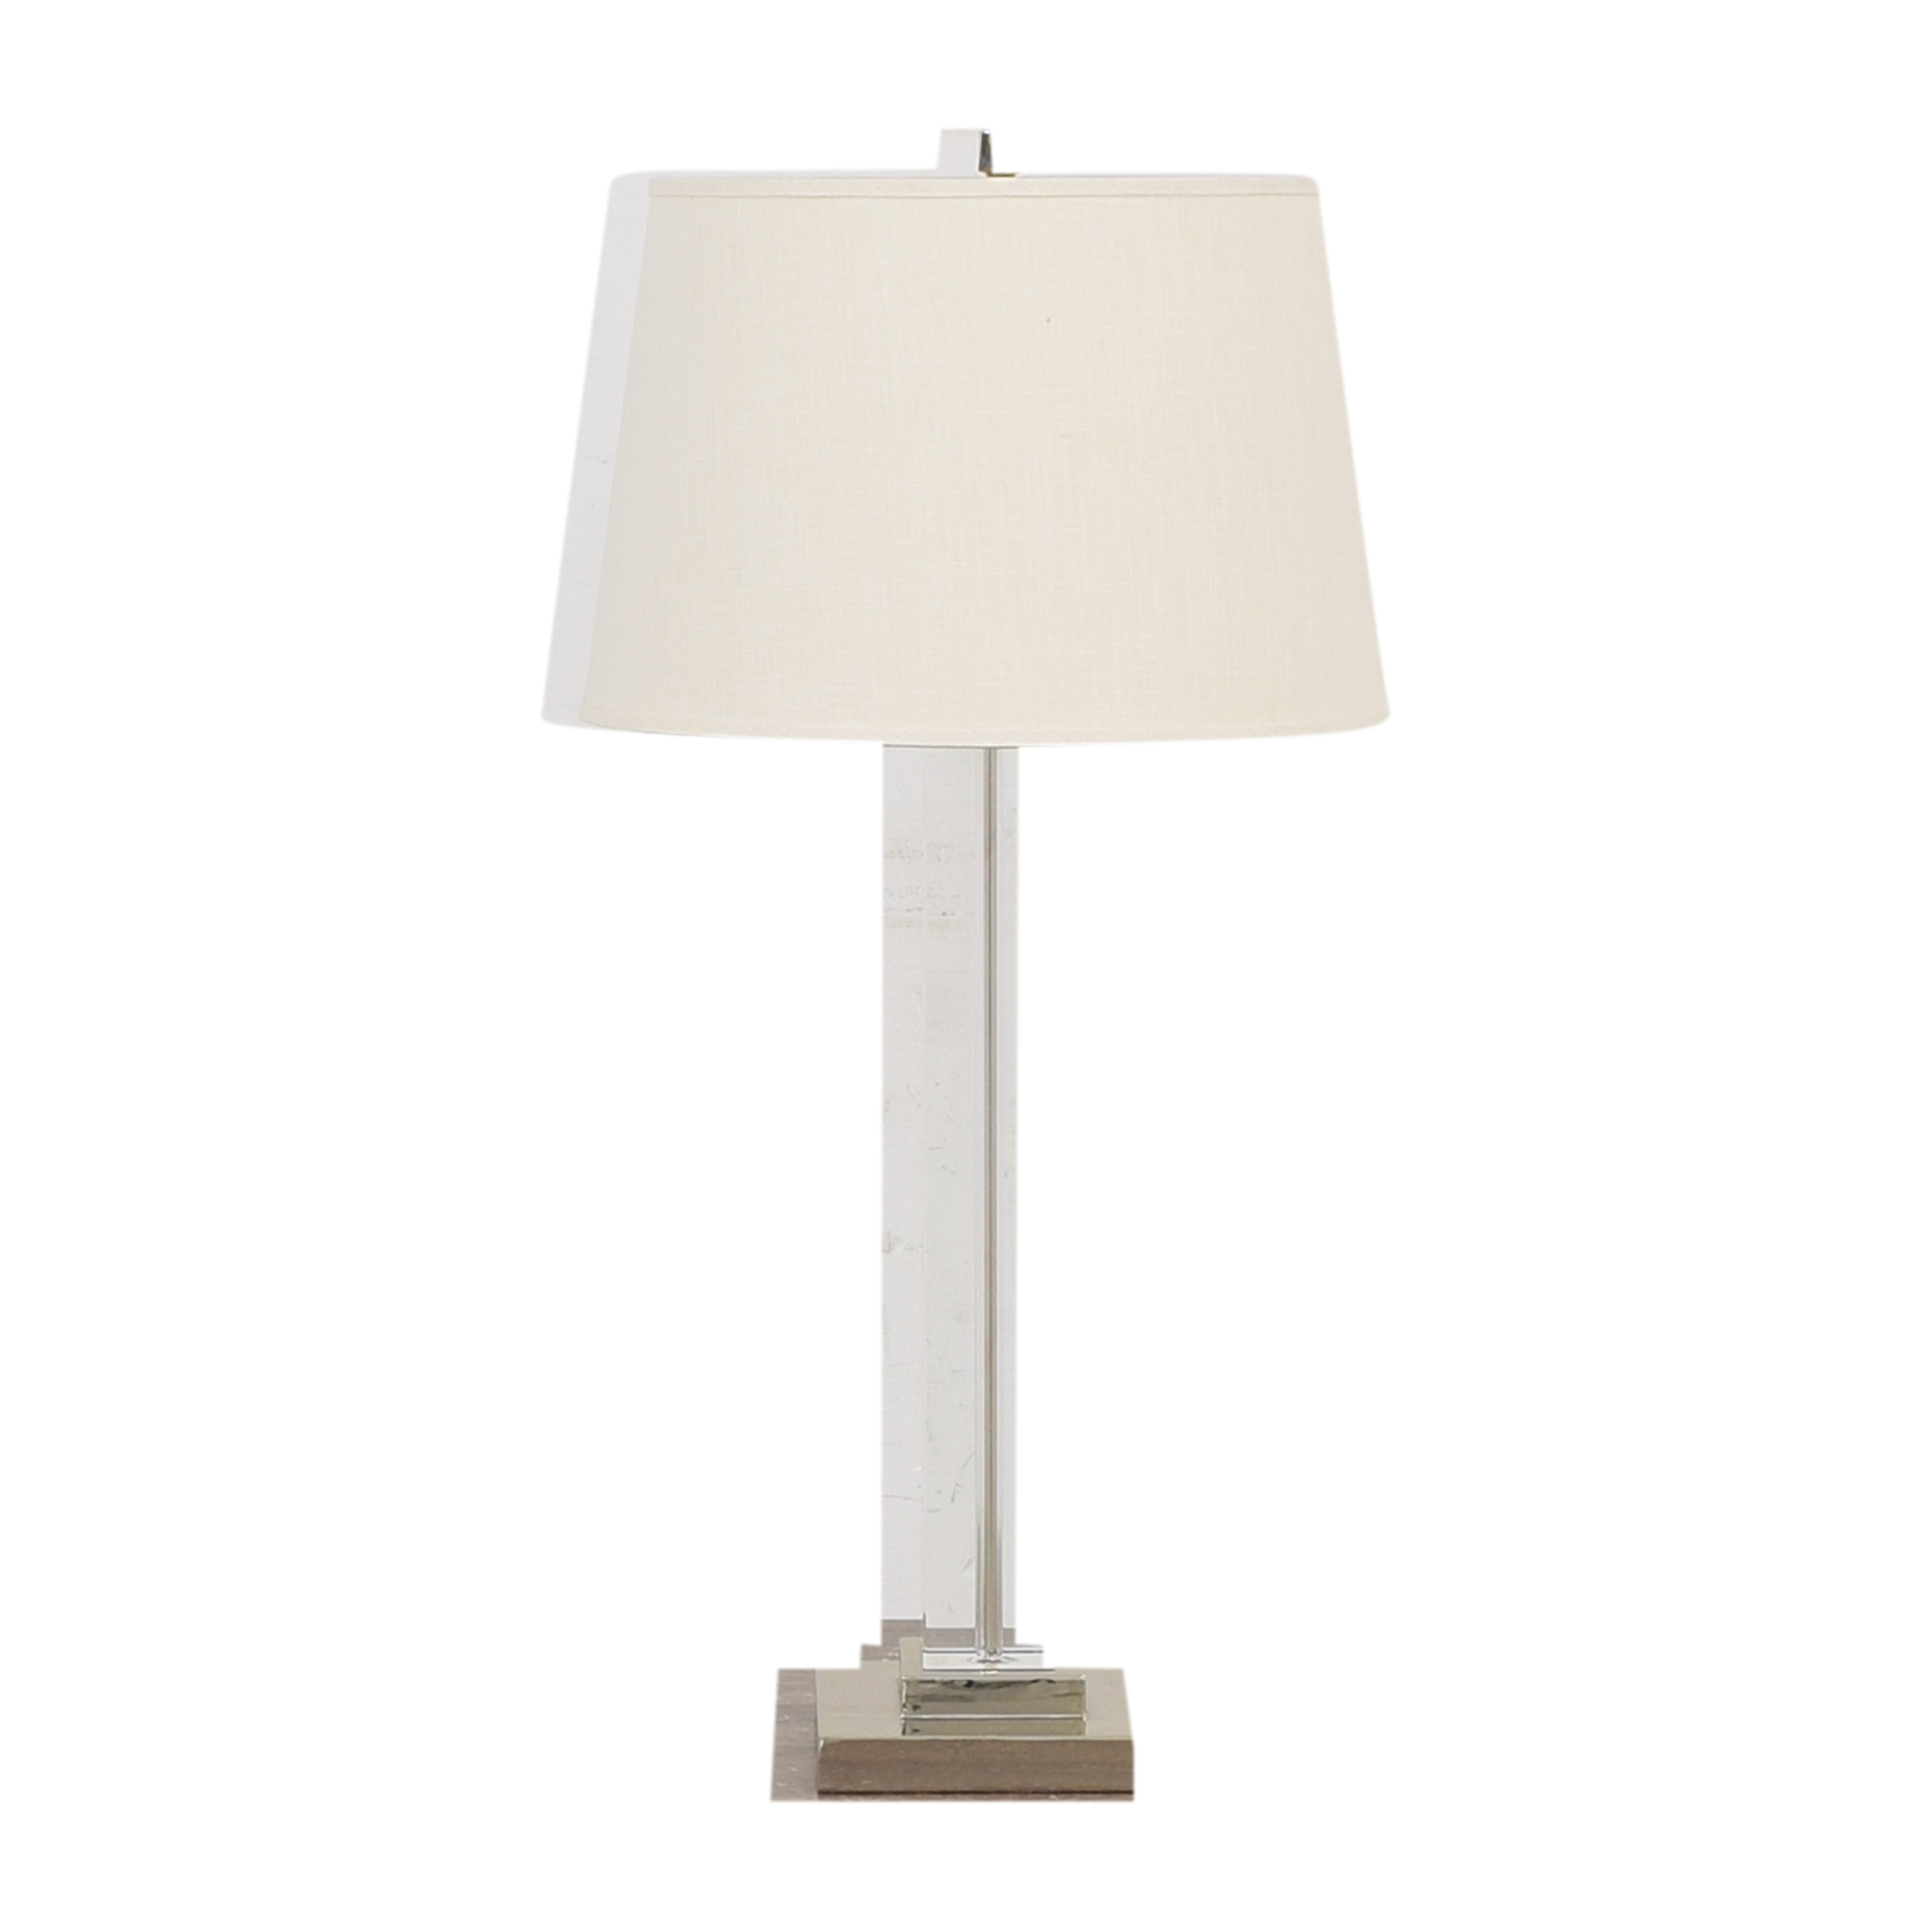 Pottery Barn Table Lamp sale